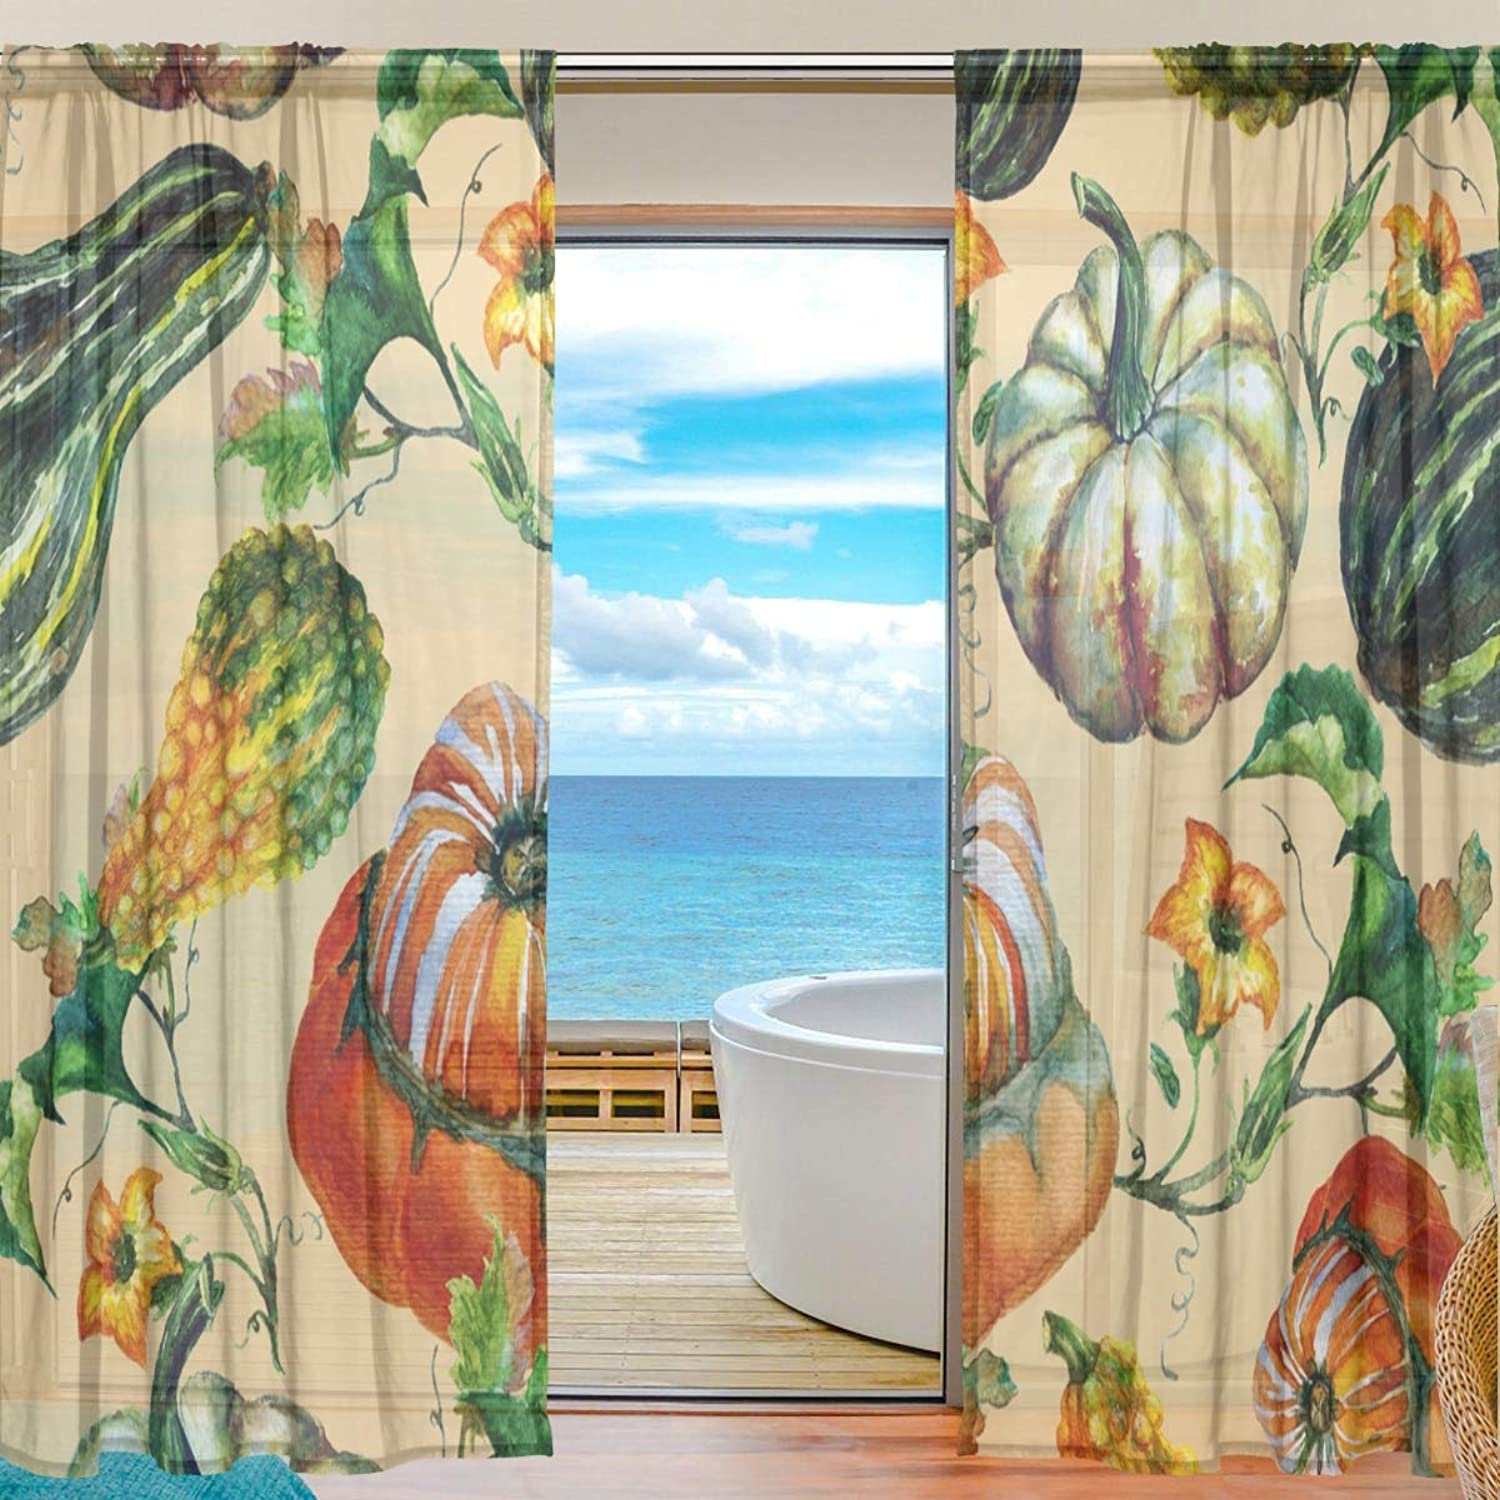 Pumpkin Pattern 2 Pieces Curtain Panel 55 x 78 inches for Bedroom Living Room